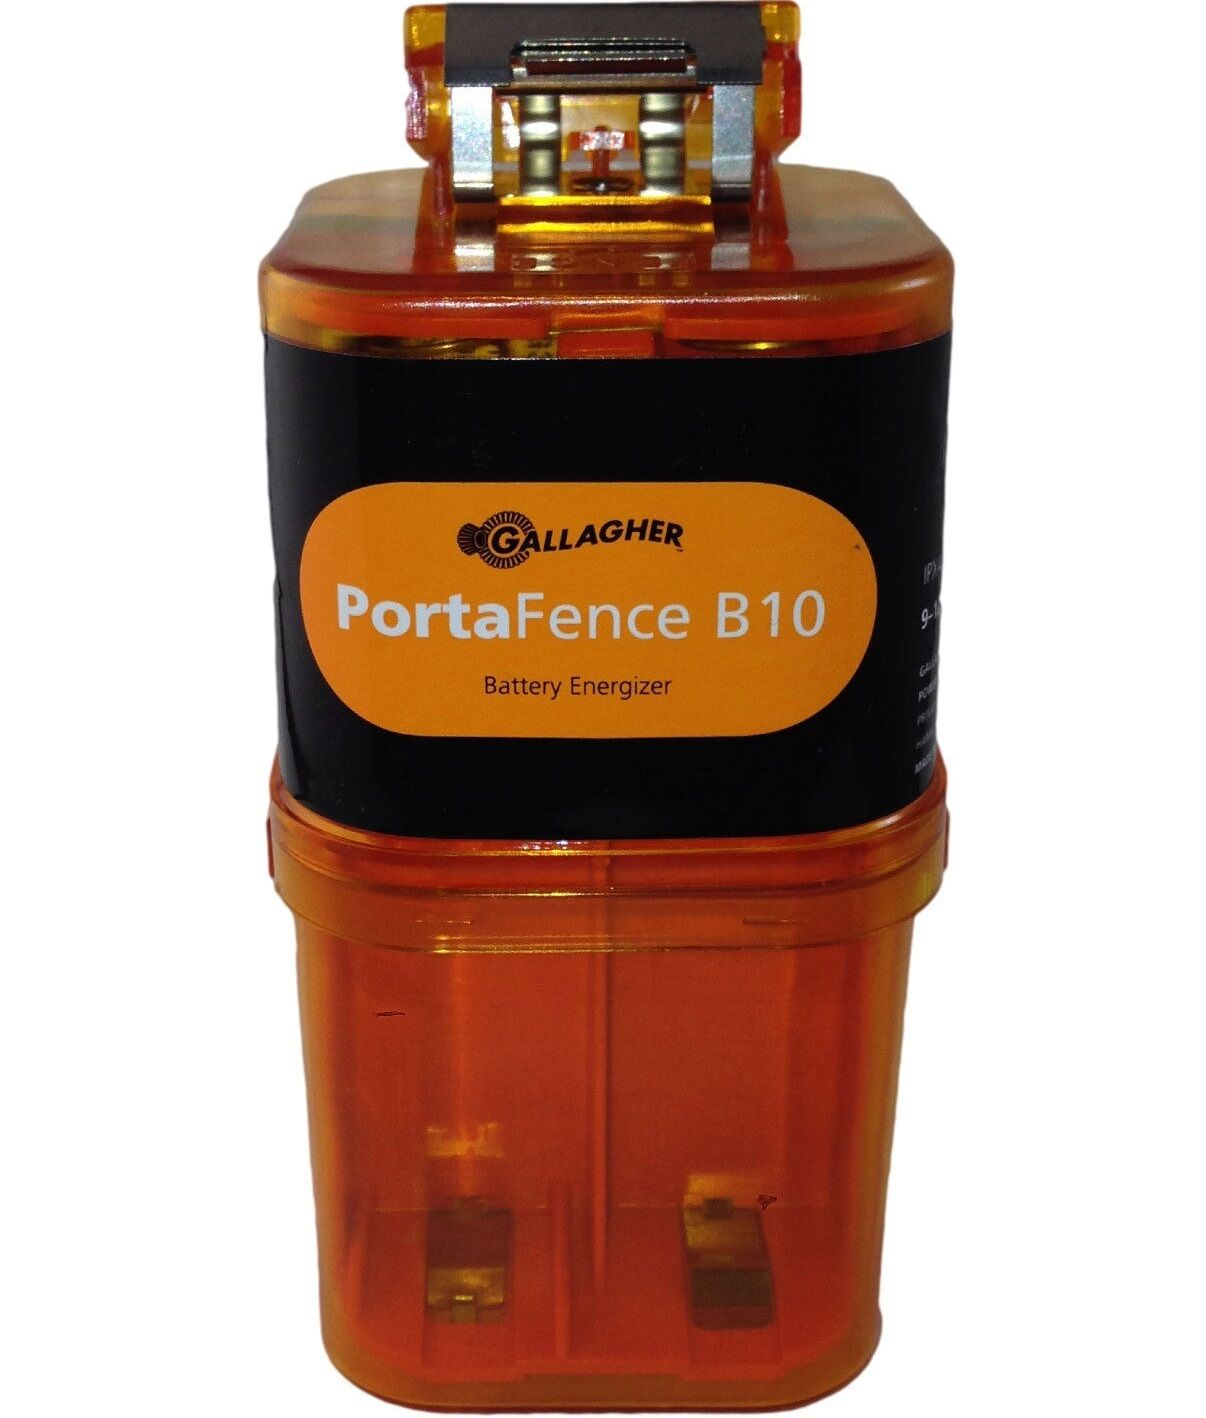 Gallagher Portafence B10 Battery Powered Energiser Ebay Mains Energizers Norton Secured By Verisign